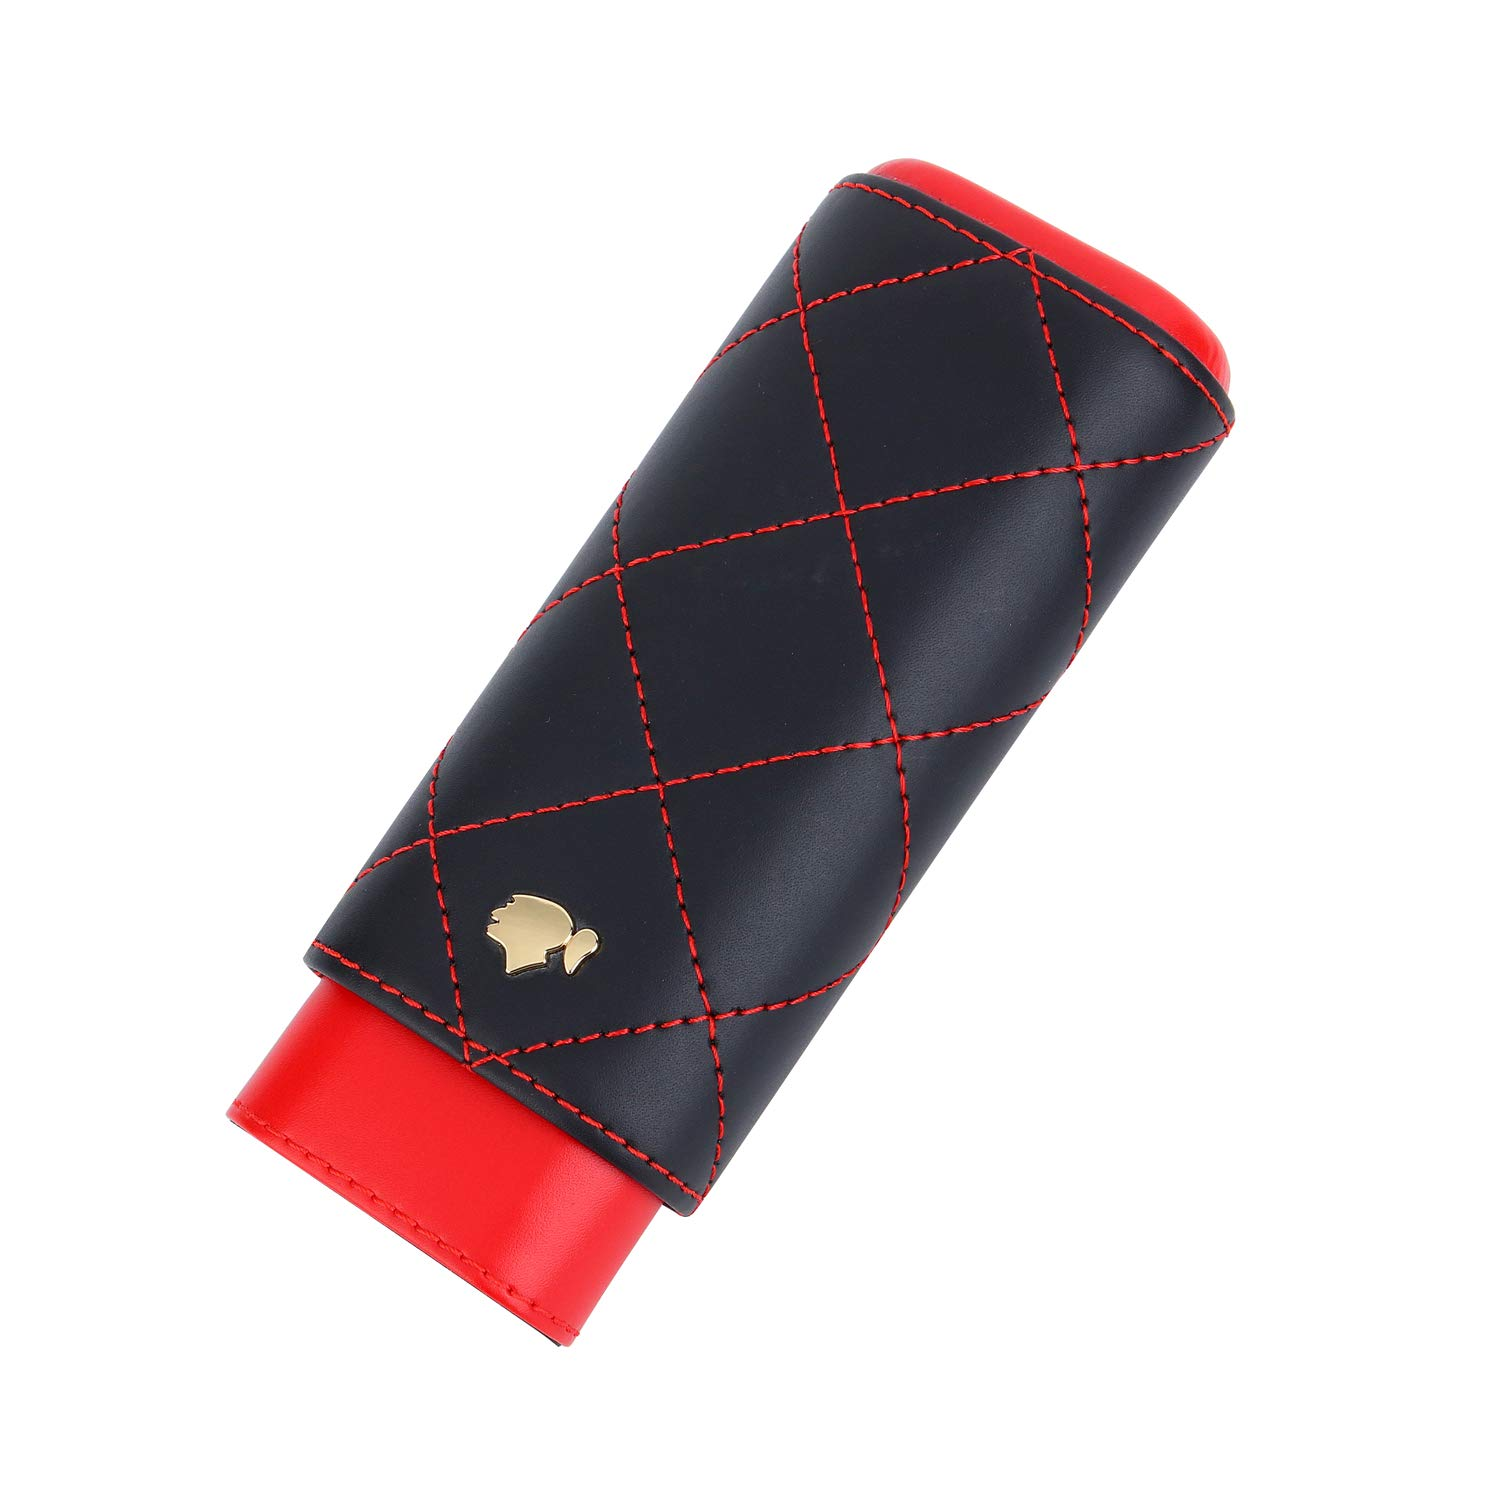 Cohiba 2 Holders Black Red Genuine Leather Cigar Case with Interior Cedar Lining, Packed with Nice Gift Box